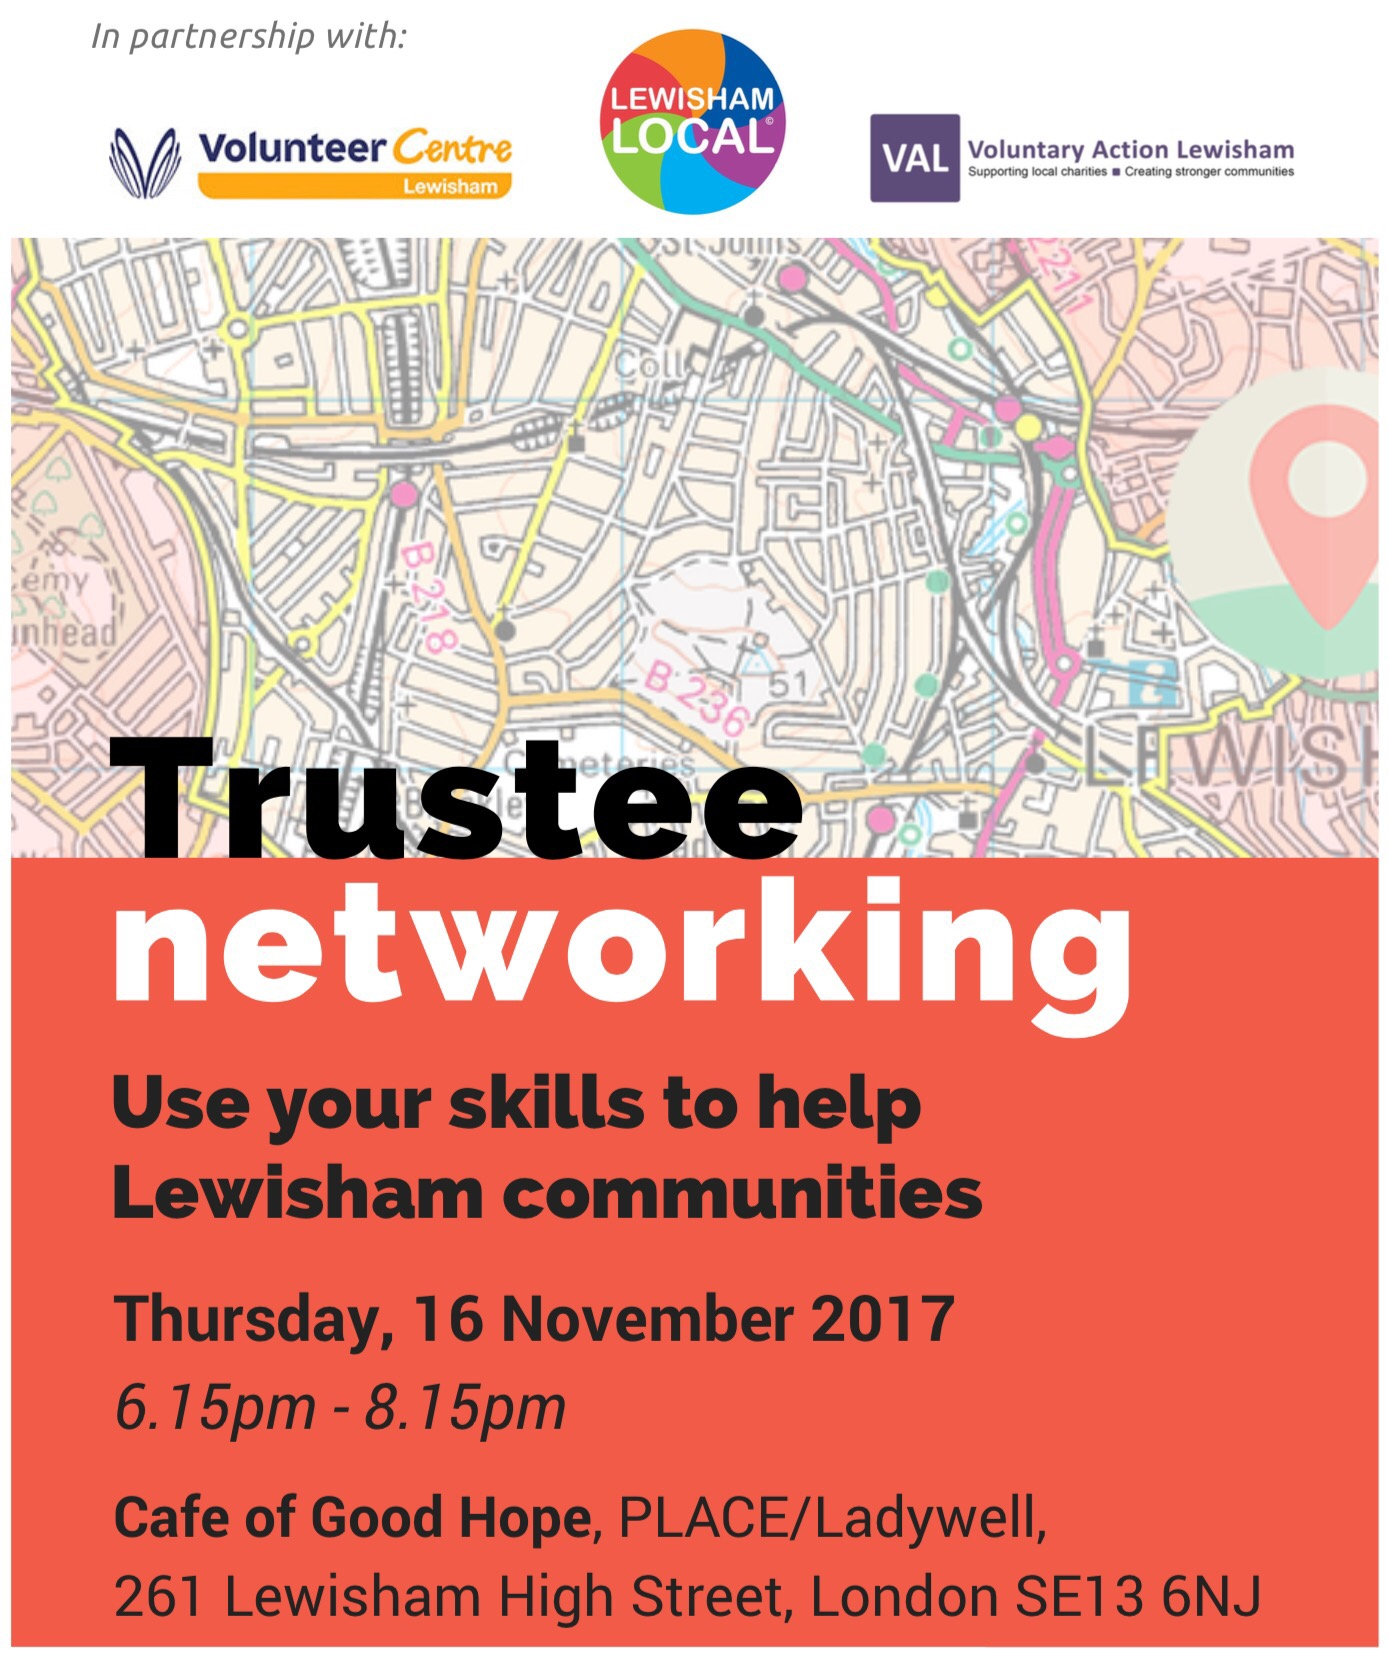 Trustee Networking Event for #TrusteesWeek | 16 Nov 2017